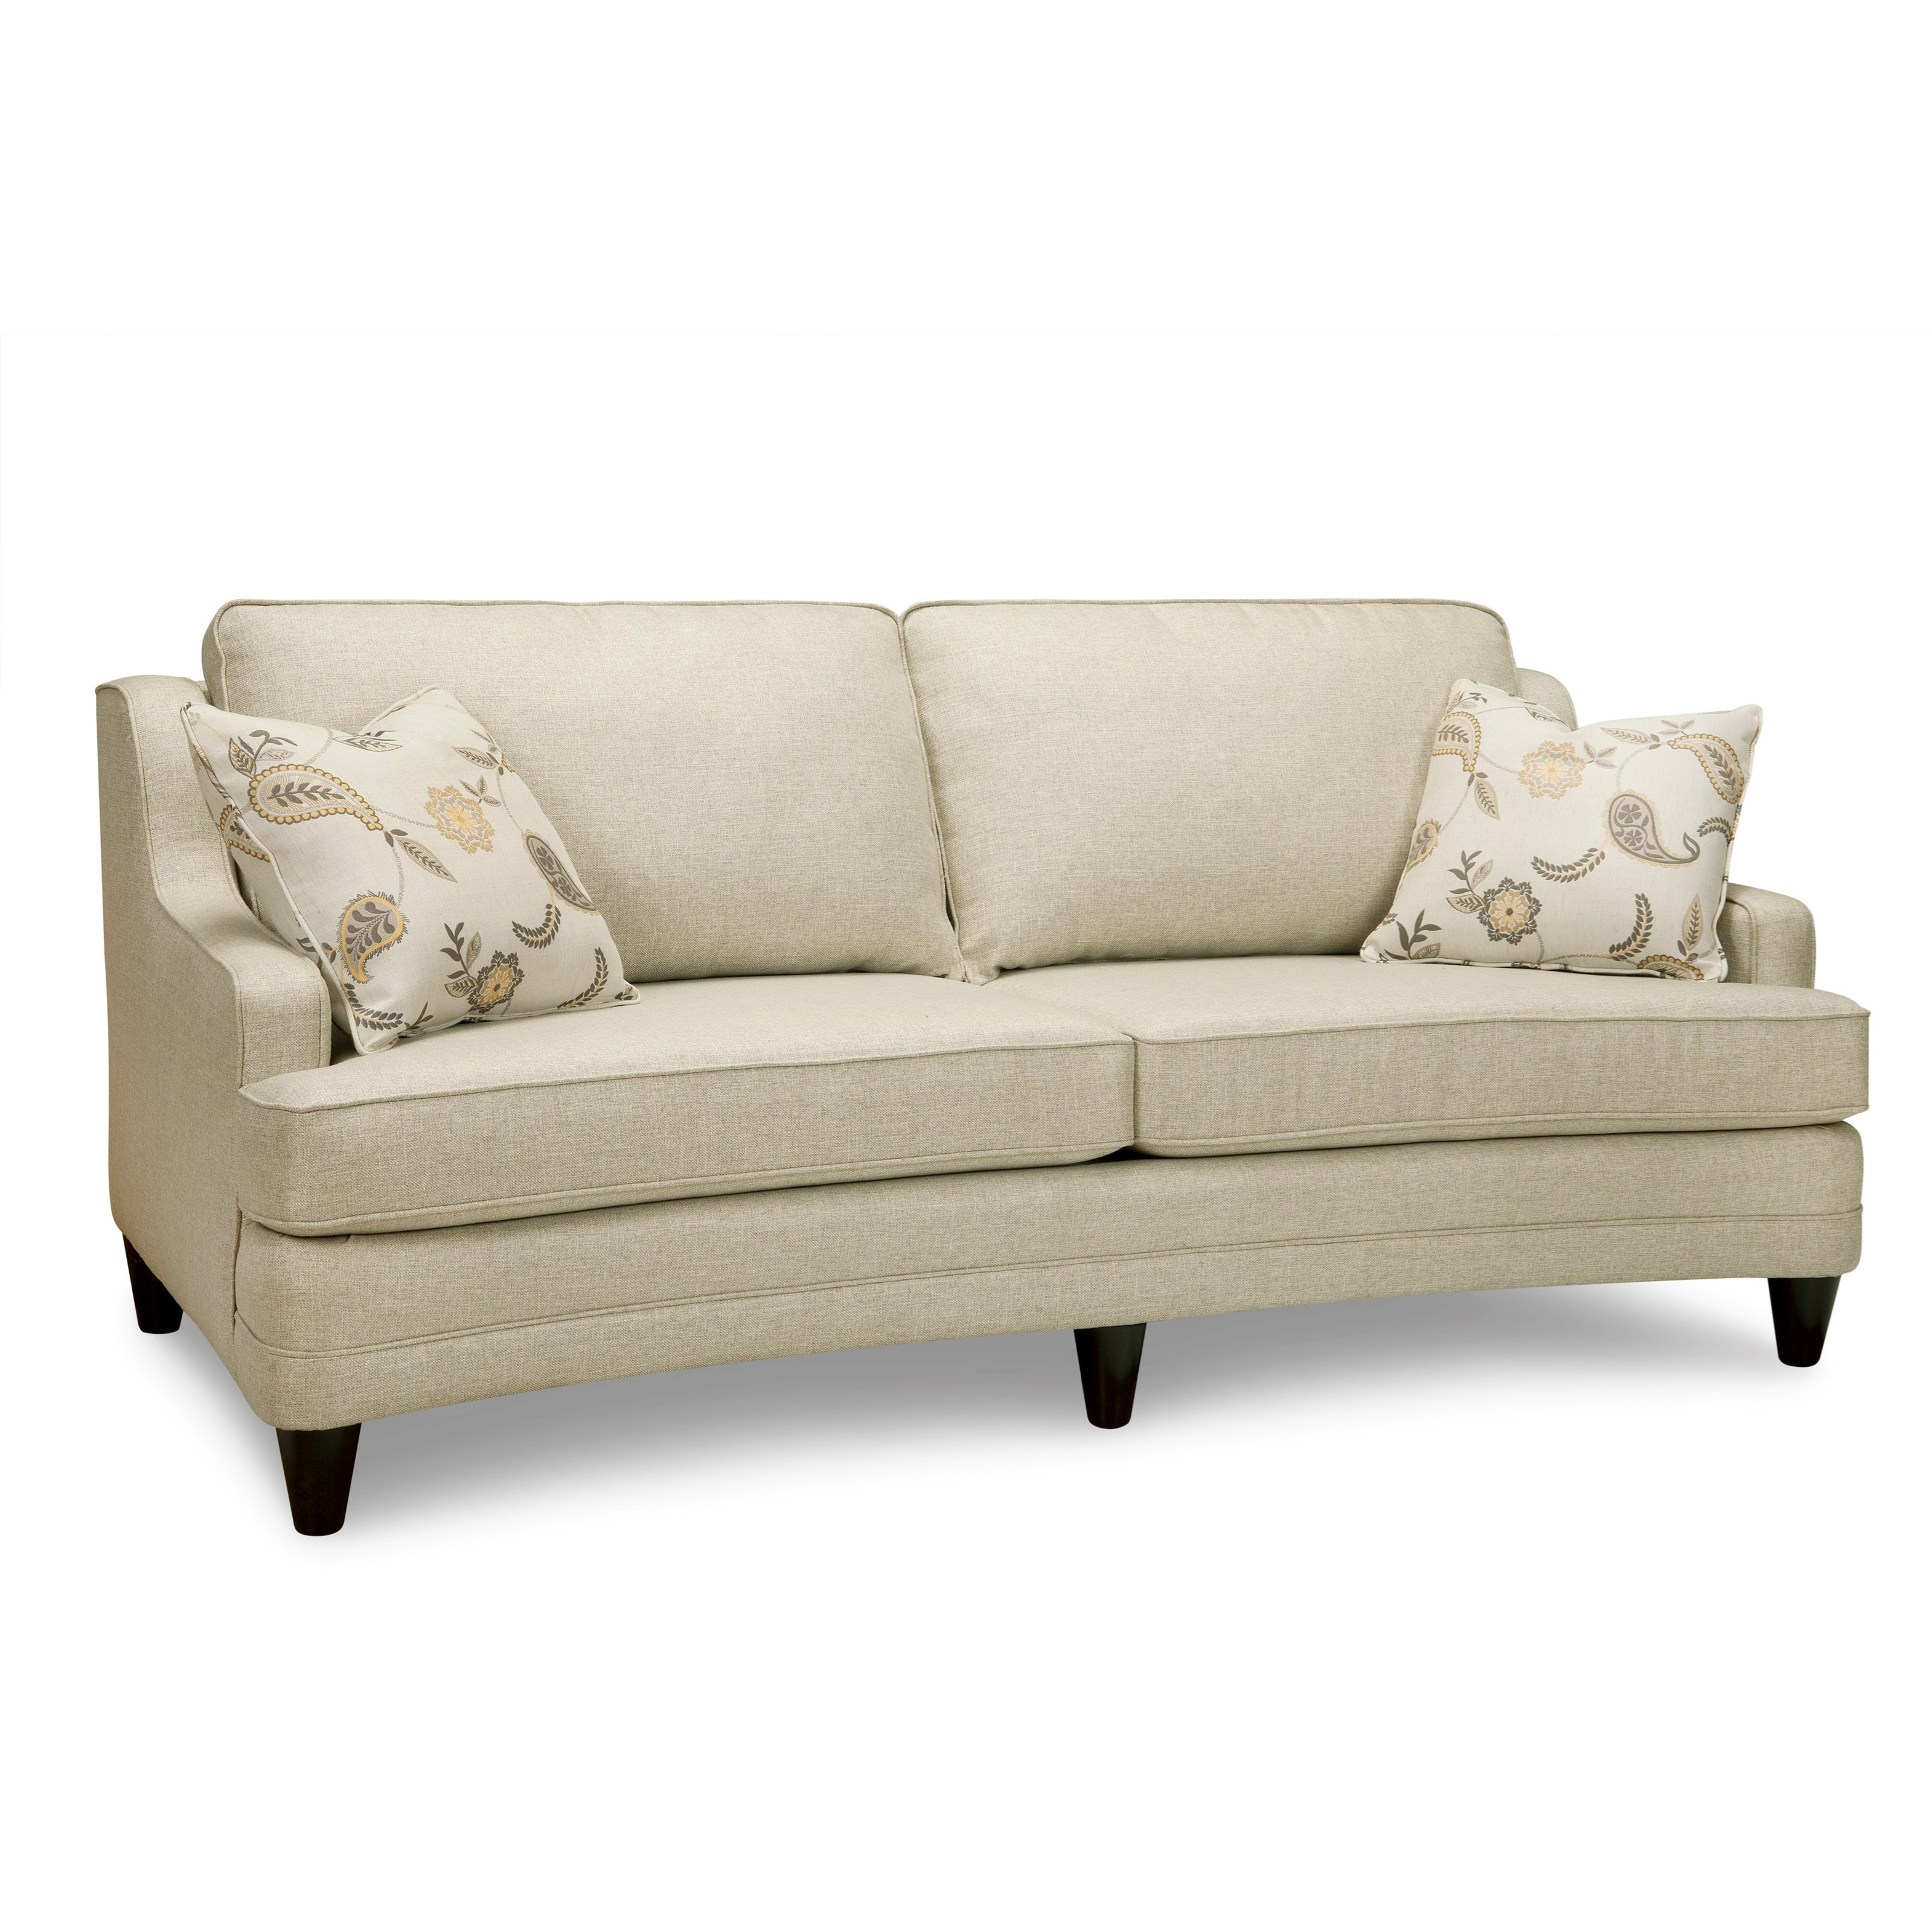 9691 Curved Condo Sofa by Superstyle at Jordan's Home Furnishings